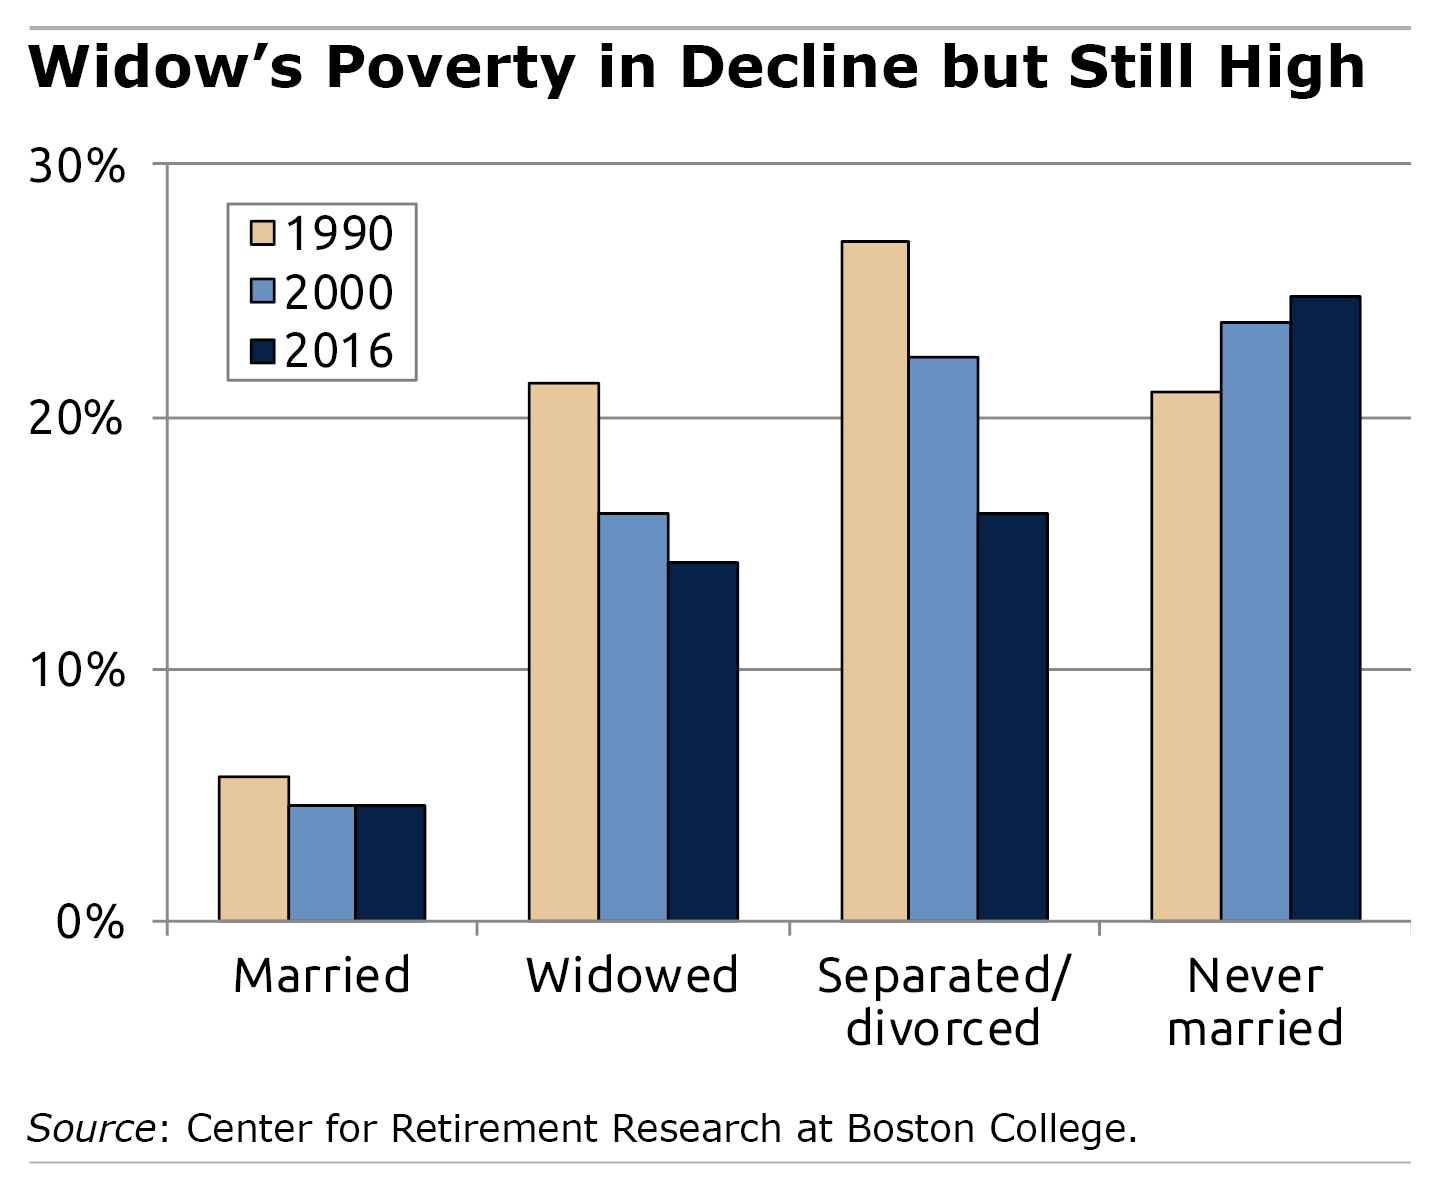 Bar graph showing percentage of poverty